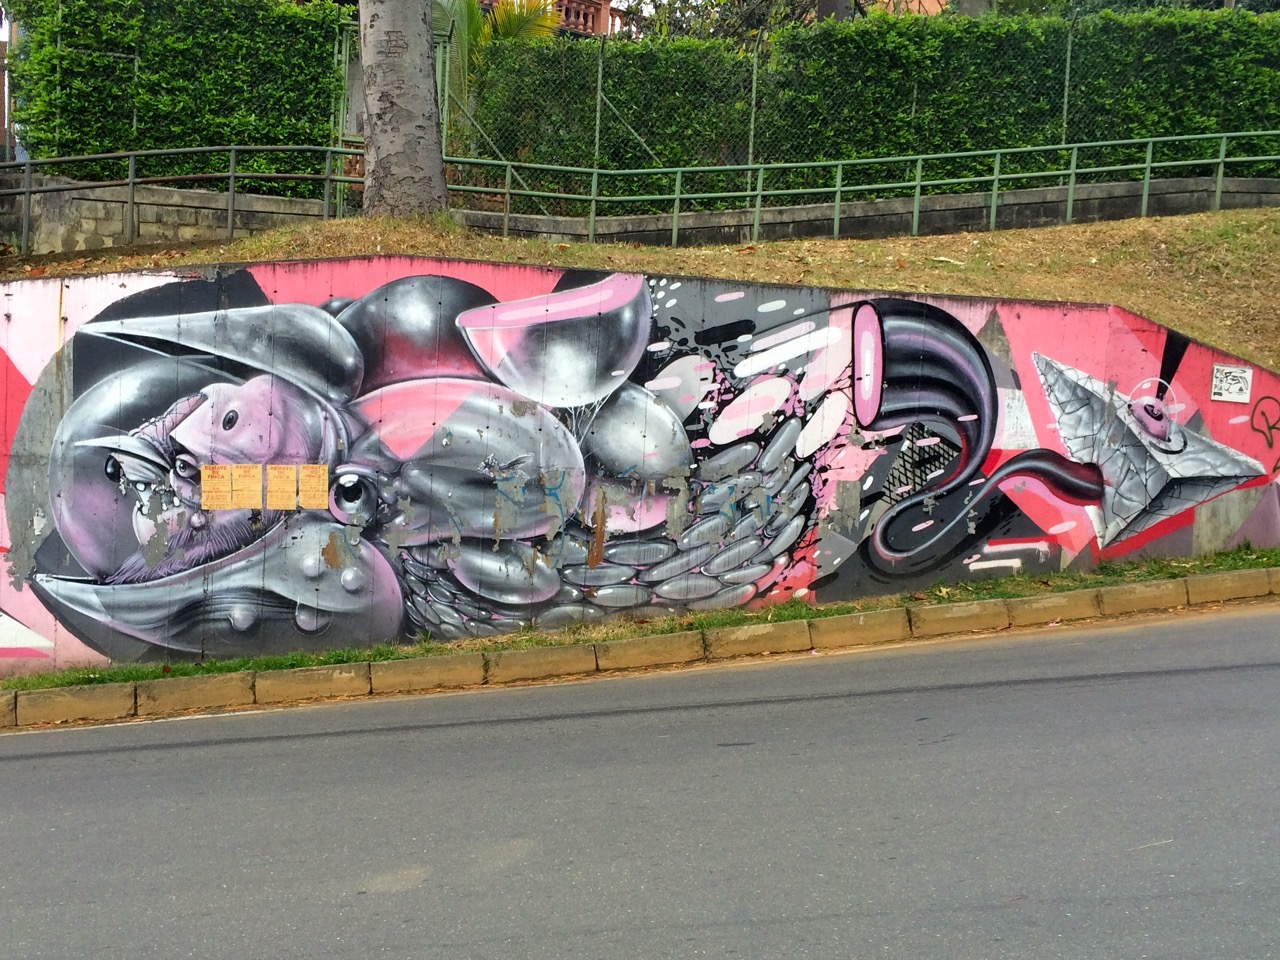 Gris One graffiti: right side